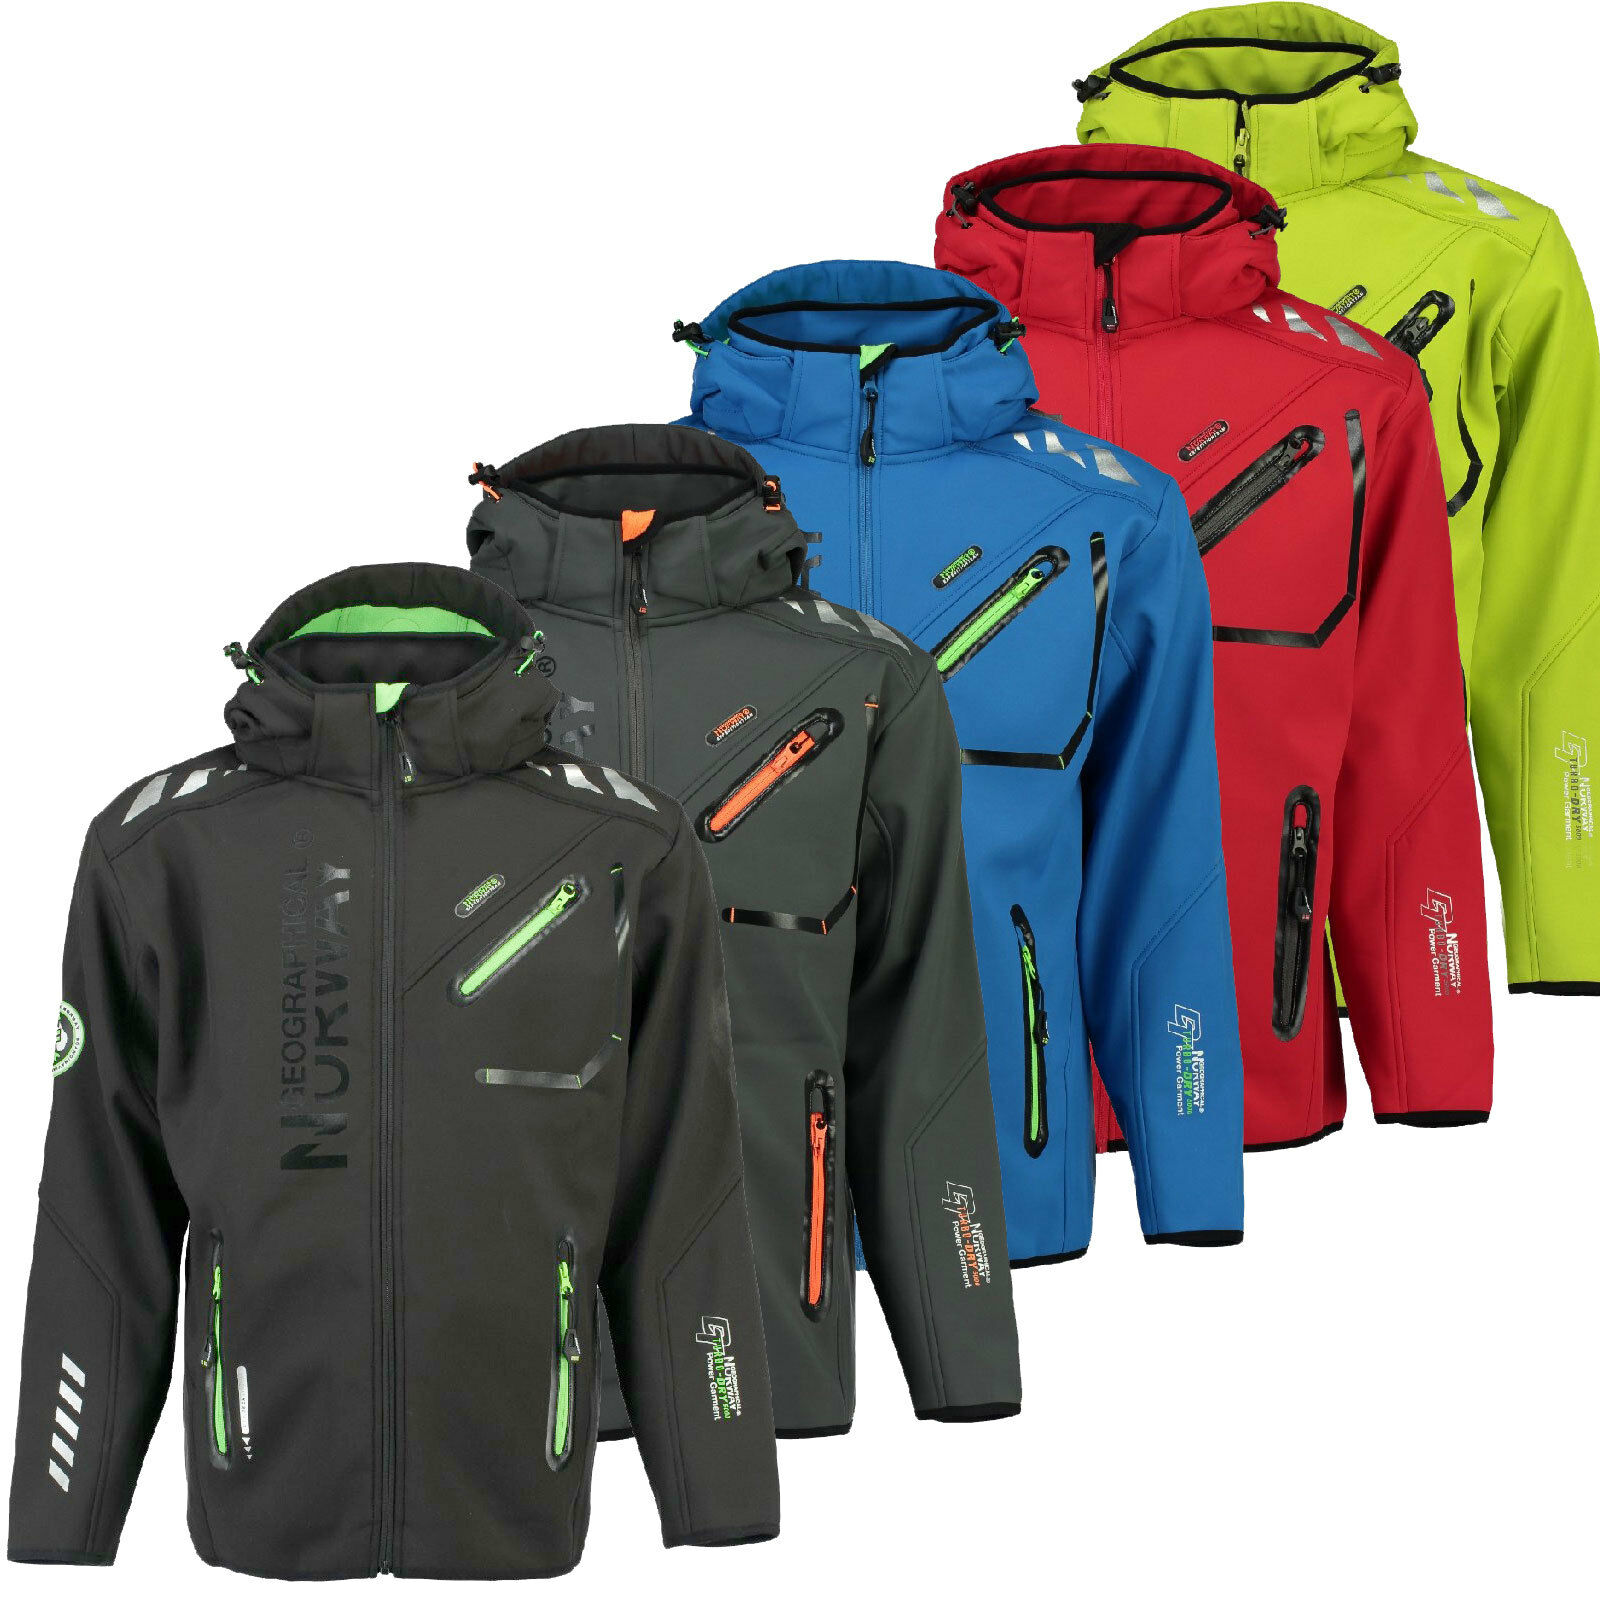 GEOGRAPHICAL uomo S RAINMAN Giacca XXL NORWAY Impermeabile Softshell ppC71rn